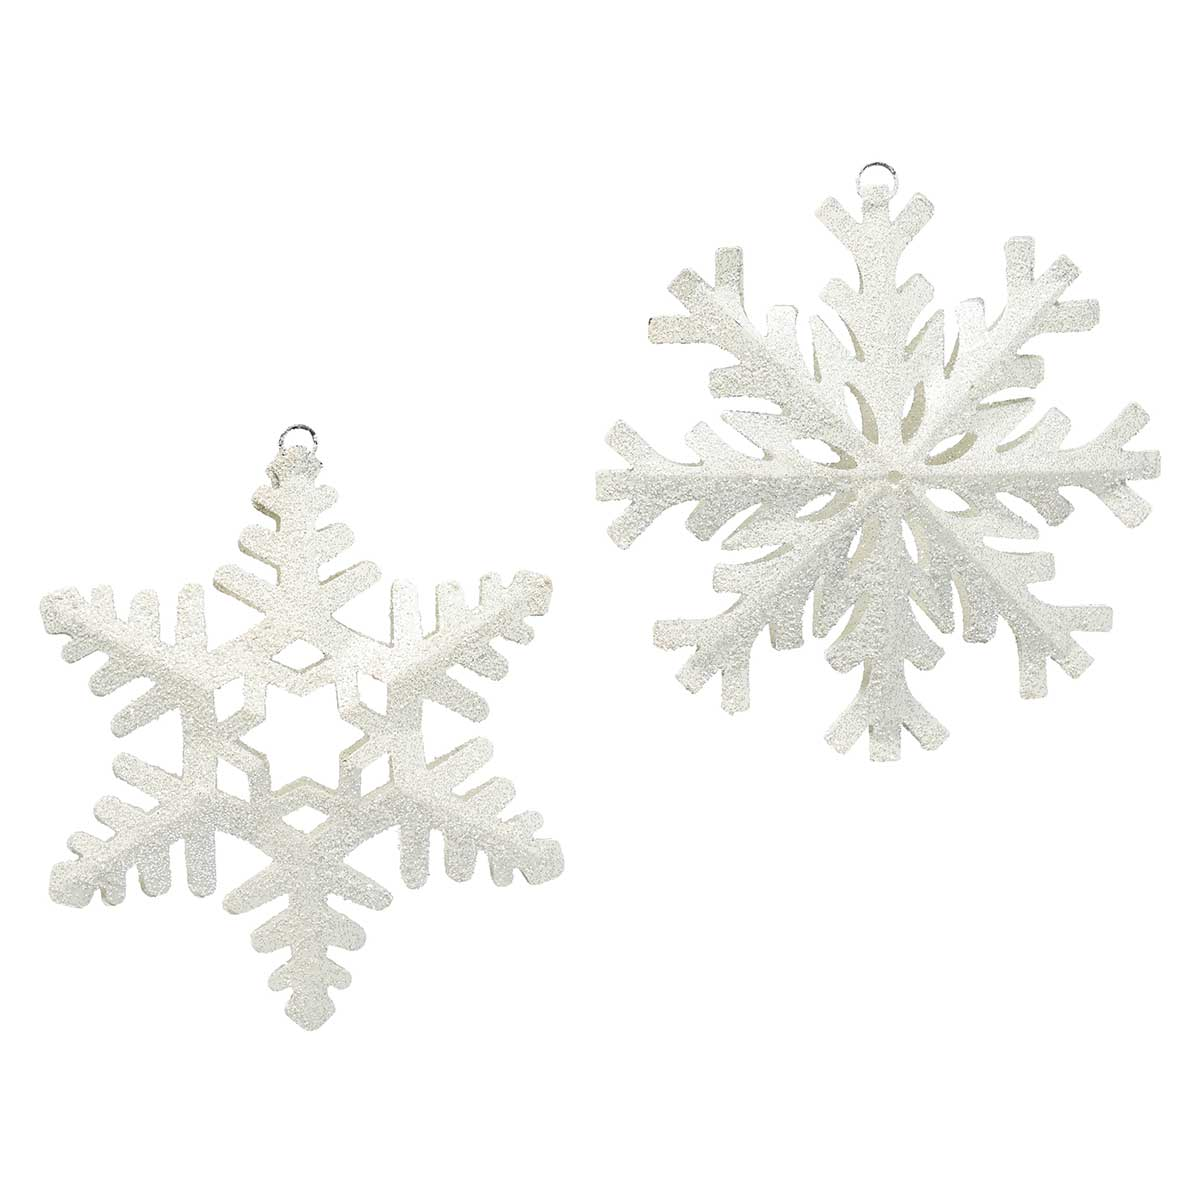 SNOWED INN METAL SNOWFLAKE